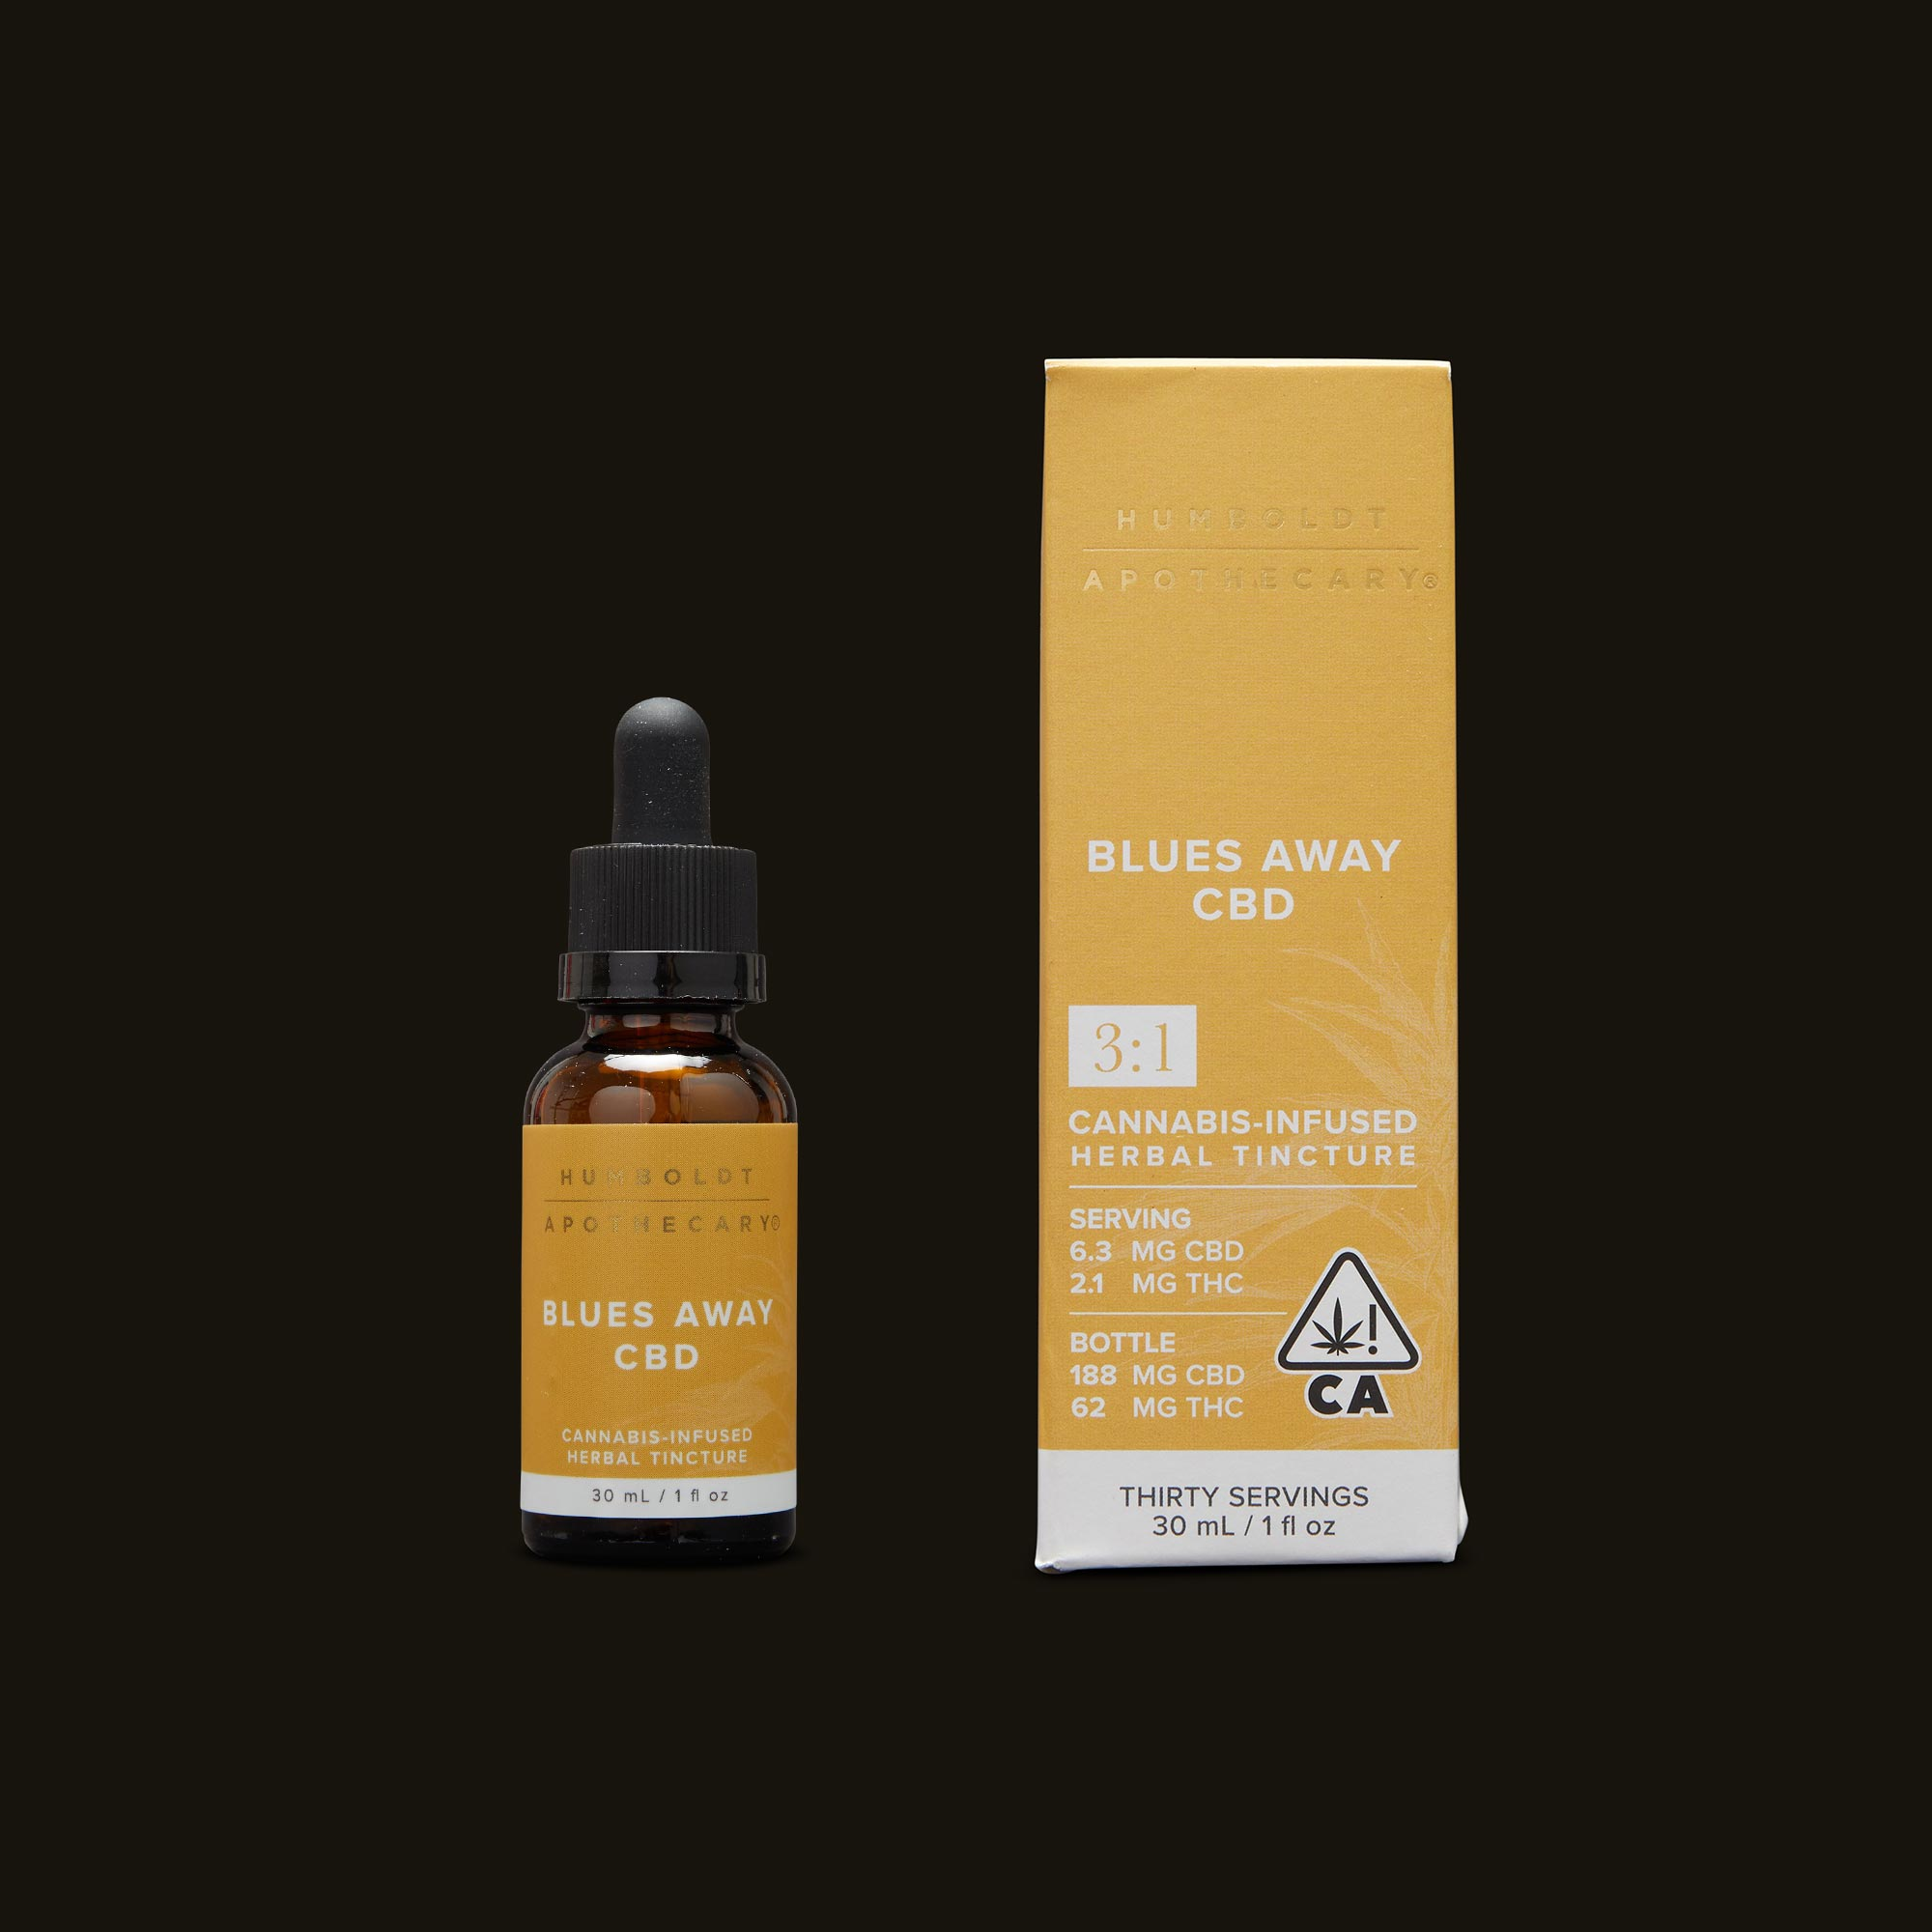 Humboldt Apothecary Blues Away CBD 3:1 Tincture and Packaging